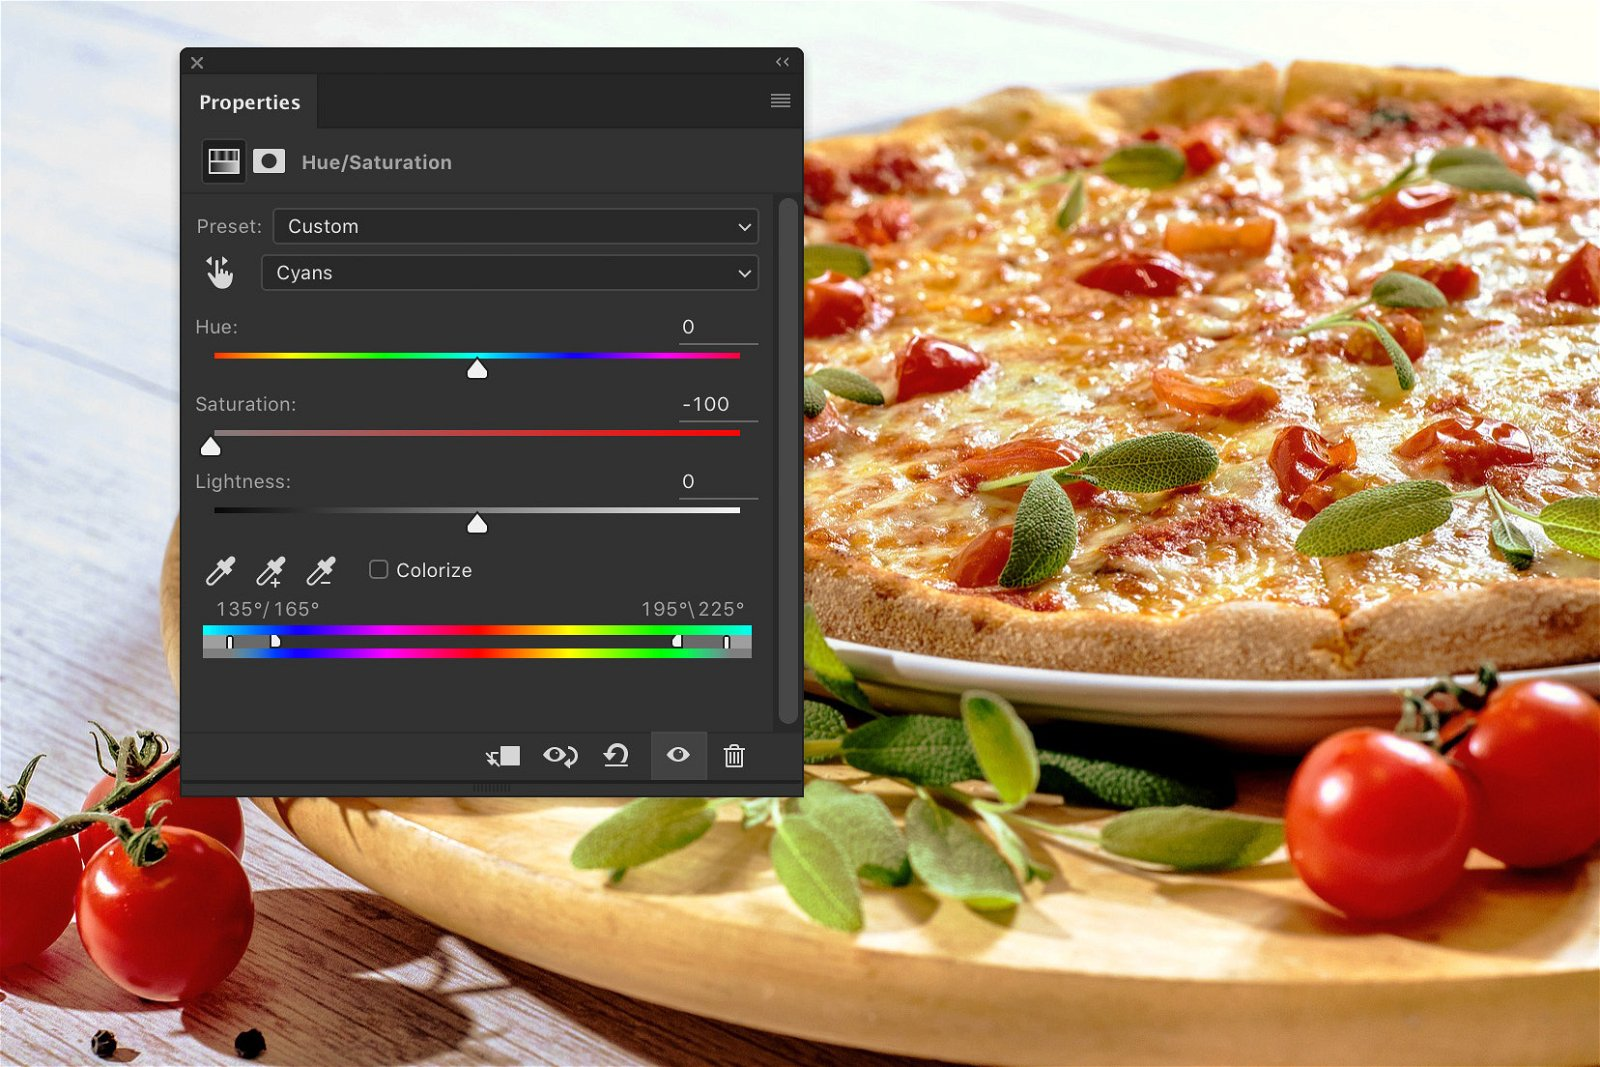 A screenshot showing how to edit food photography in Photoshop - saturation